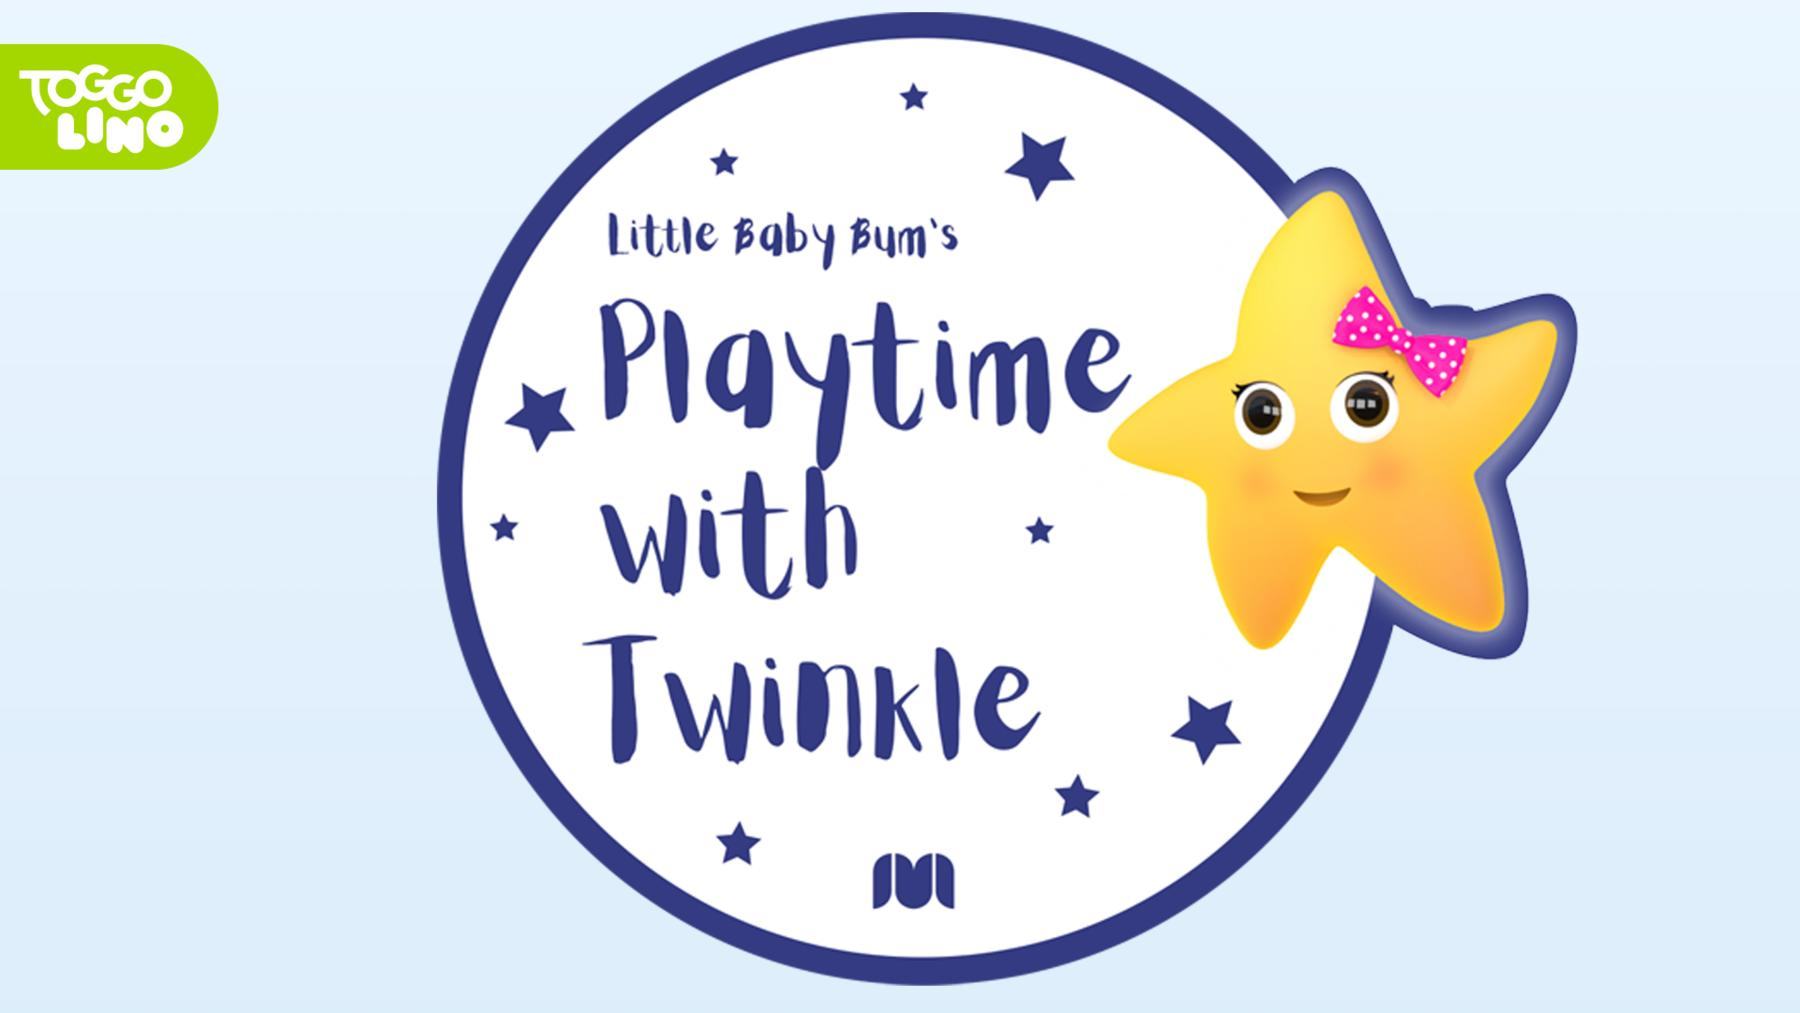 Playtime with Twinkle